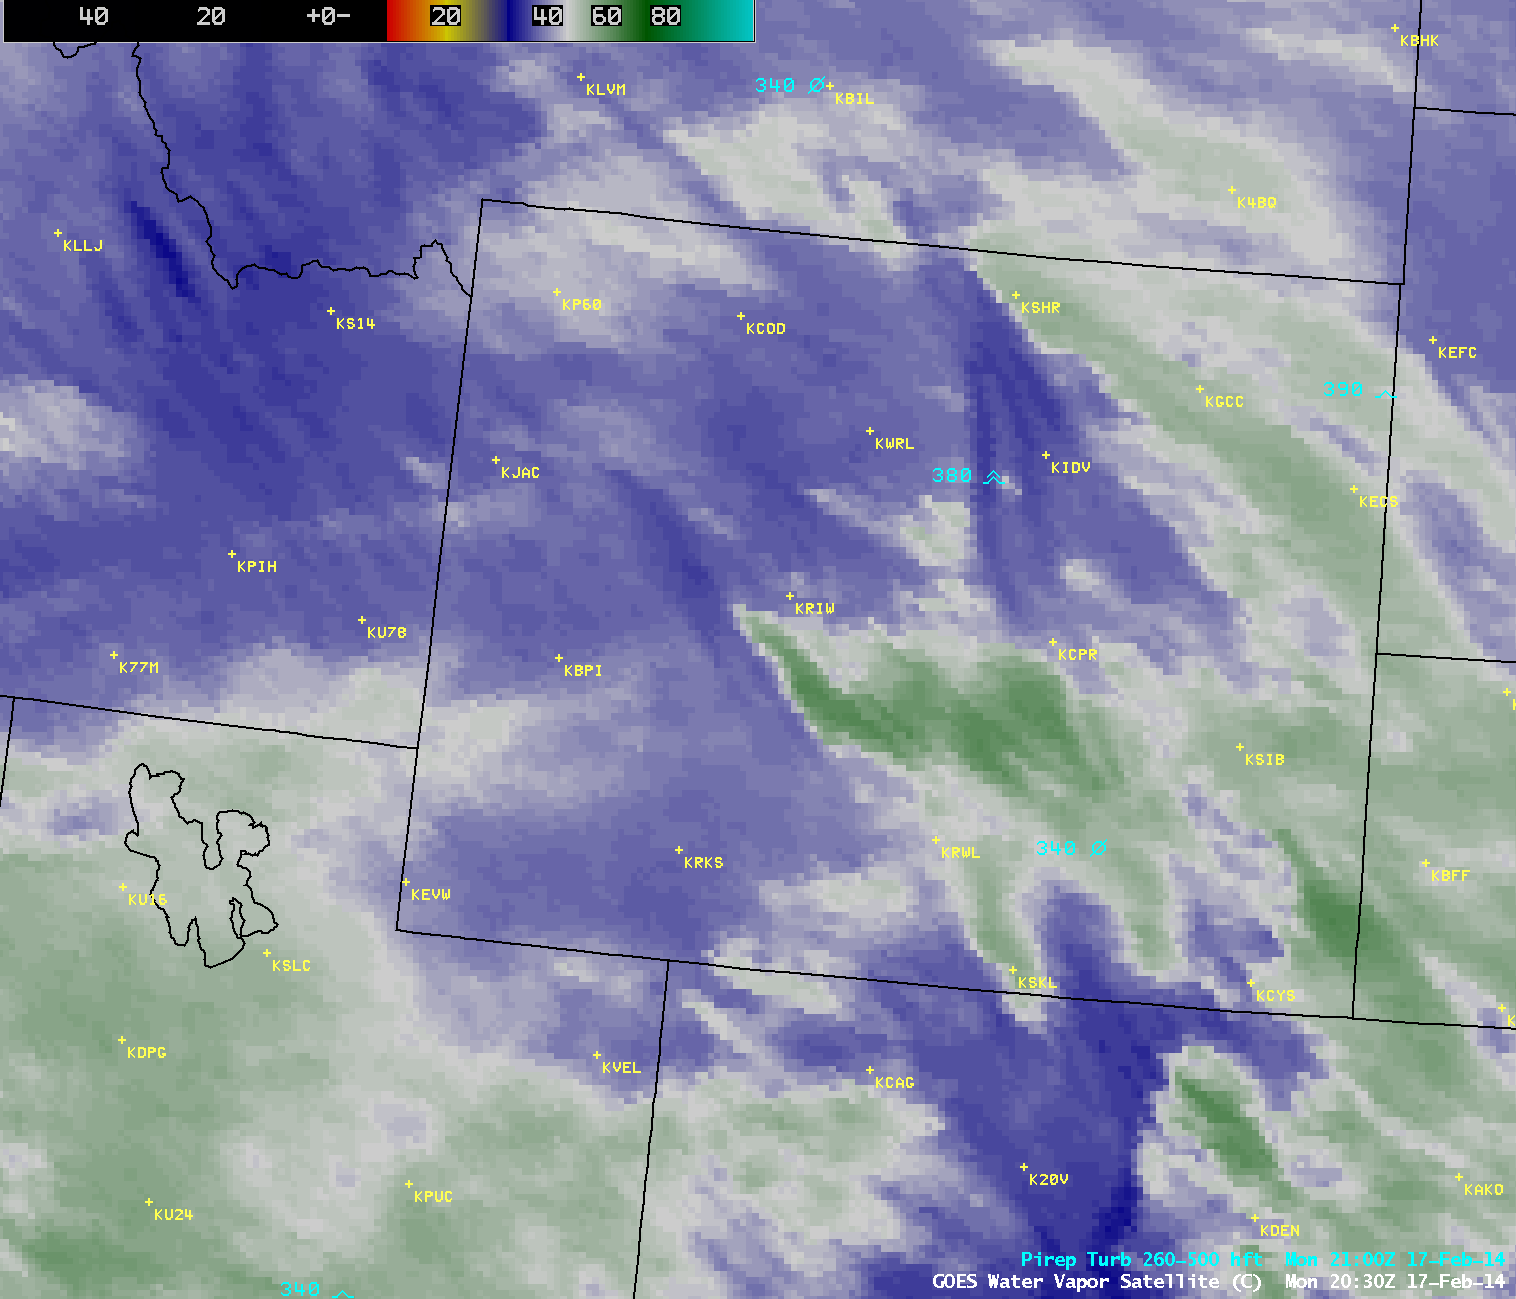 GOES-13 6.5 µm water vapor channel images, with pilot reports of turbulence (click to play animation)